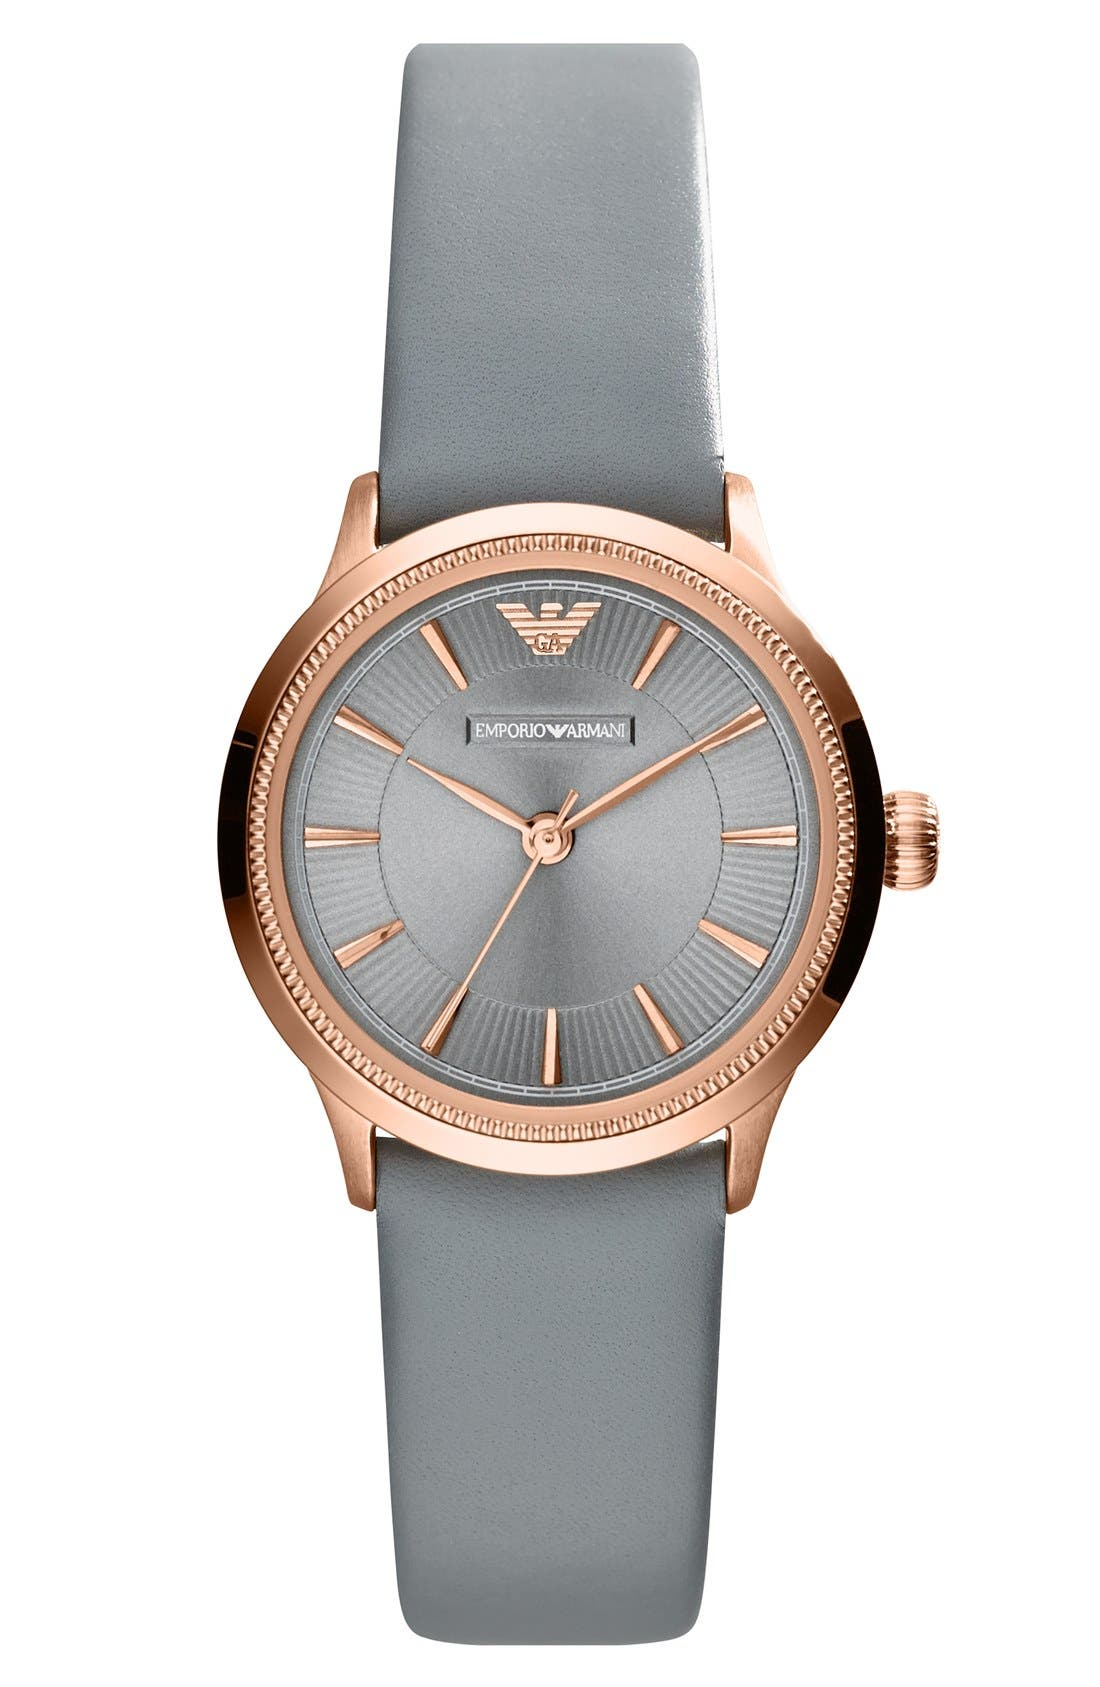 Main Image - Emporio Armani Round Leather Strap Watch, 26mm